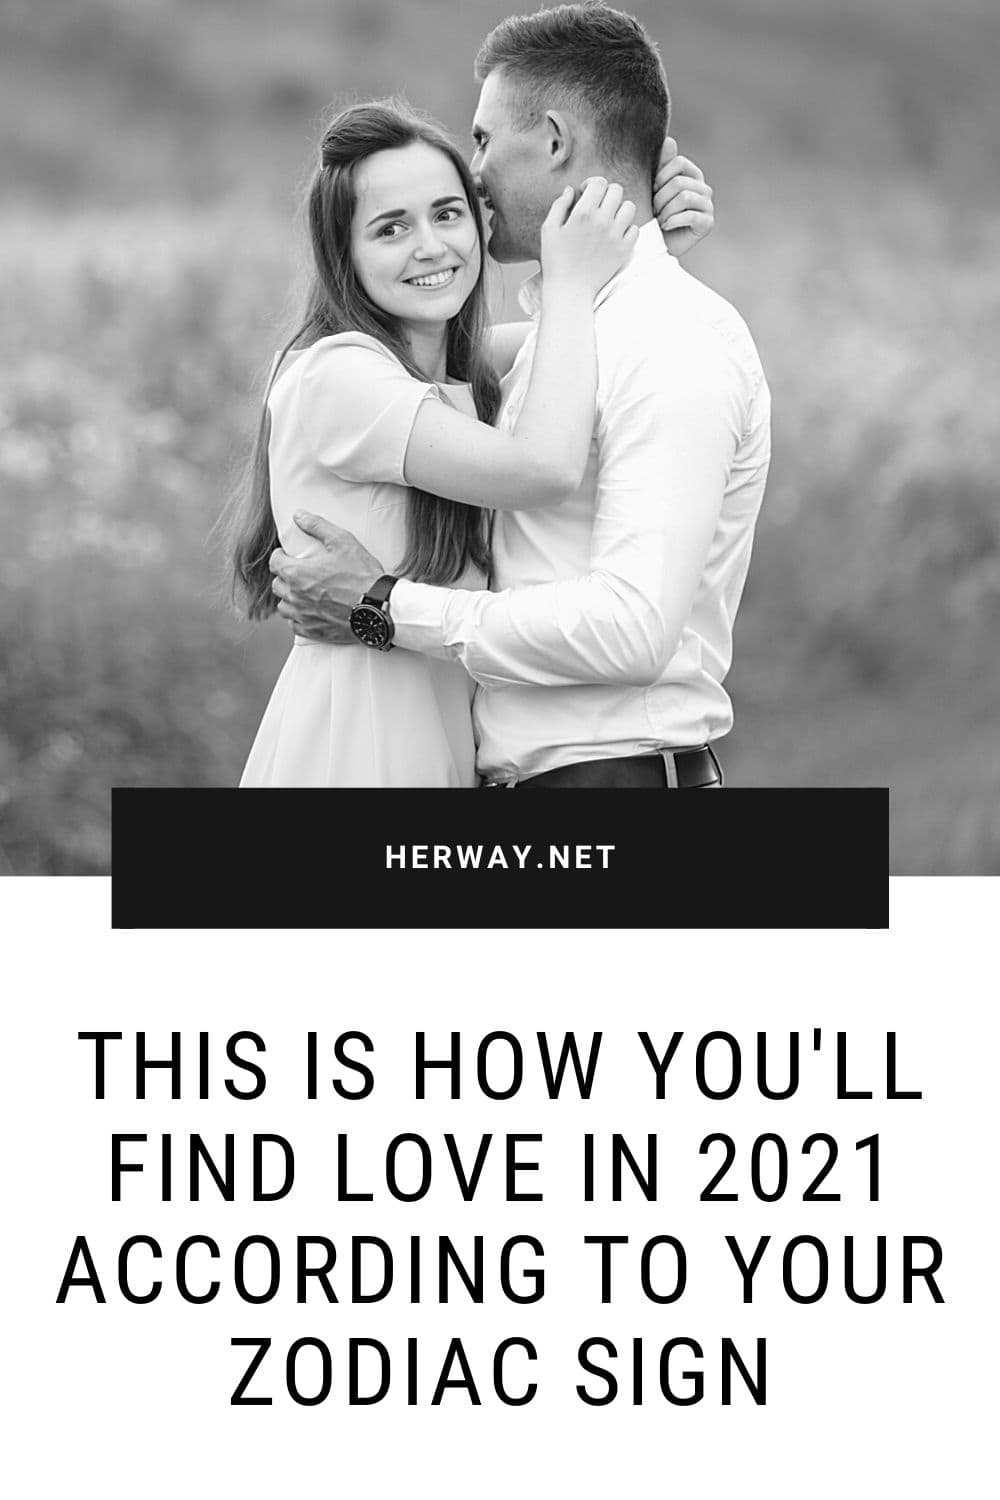 This Is How You'll Find Love In 2021 According To Your Zodiac Sign